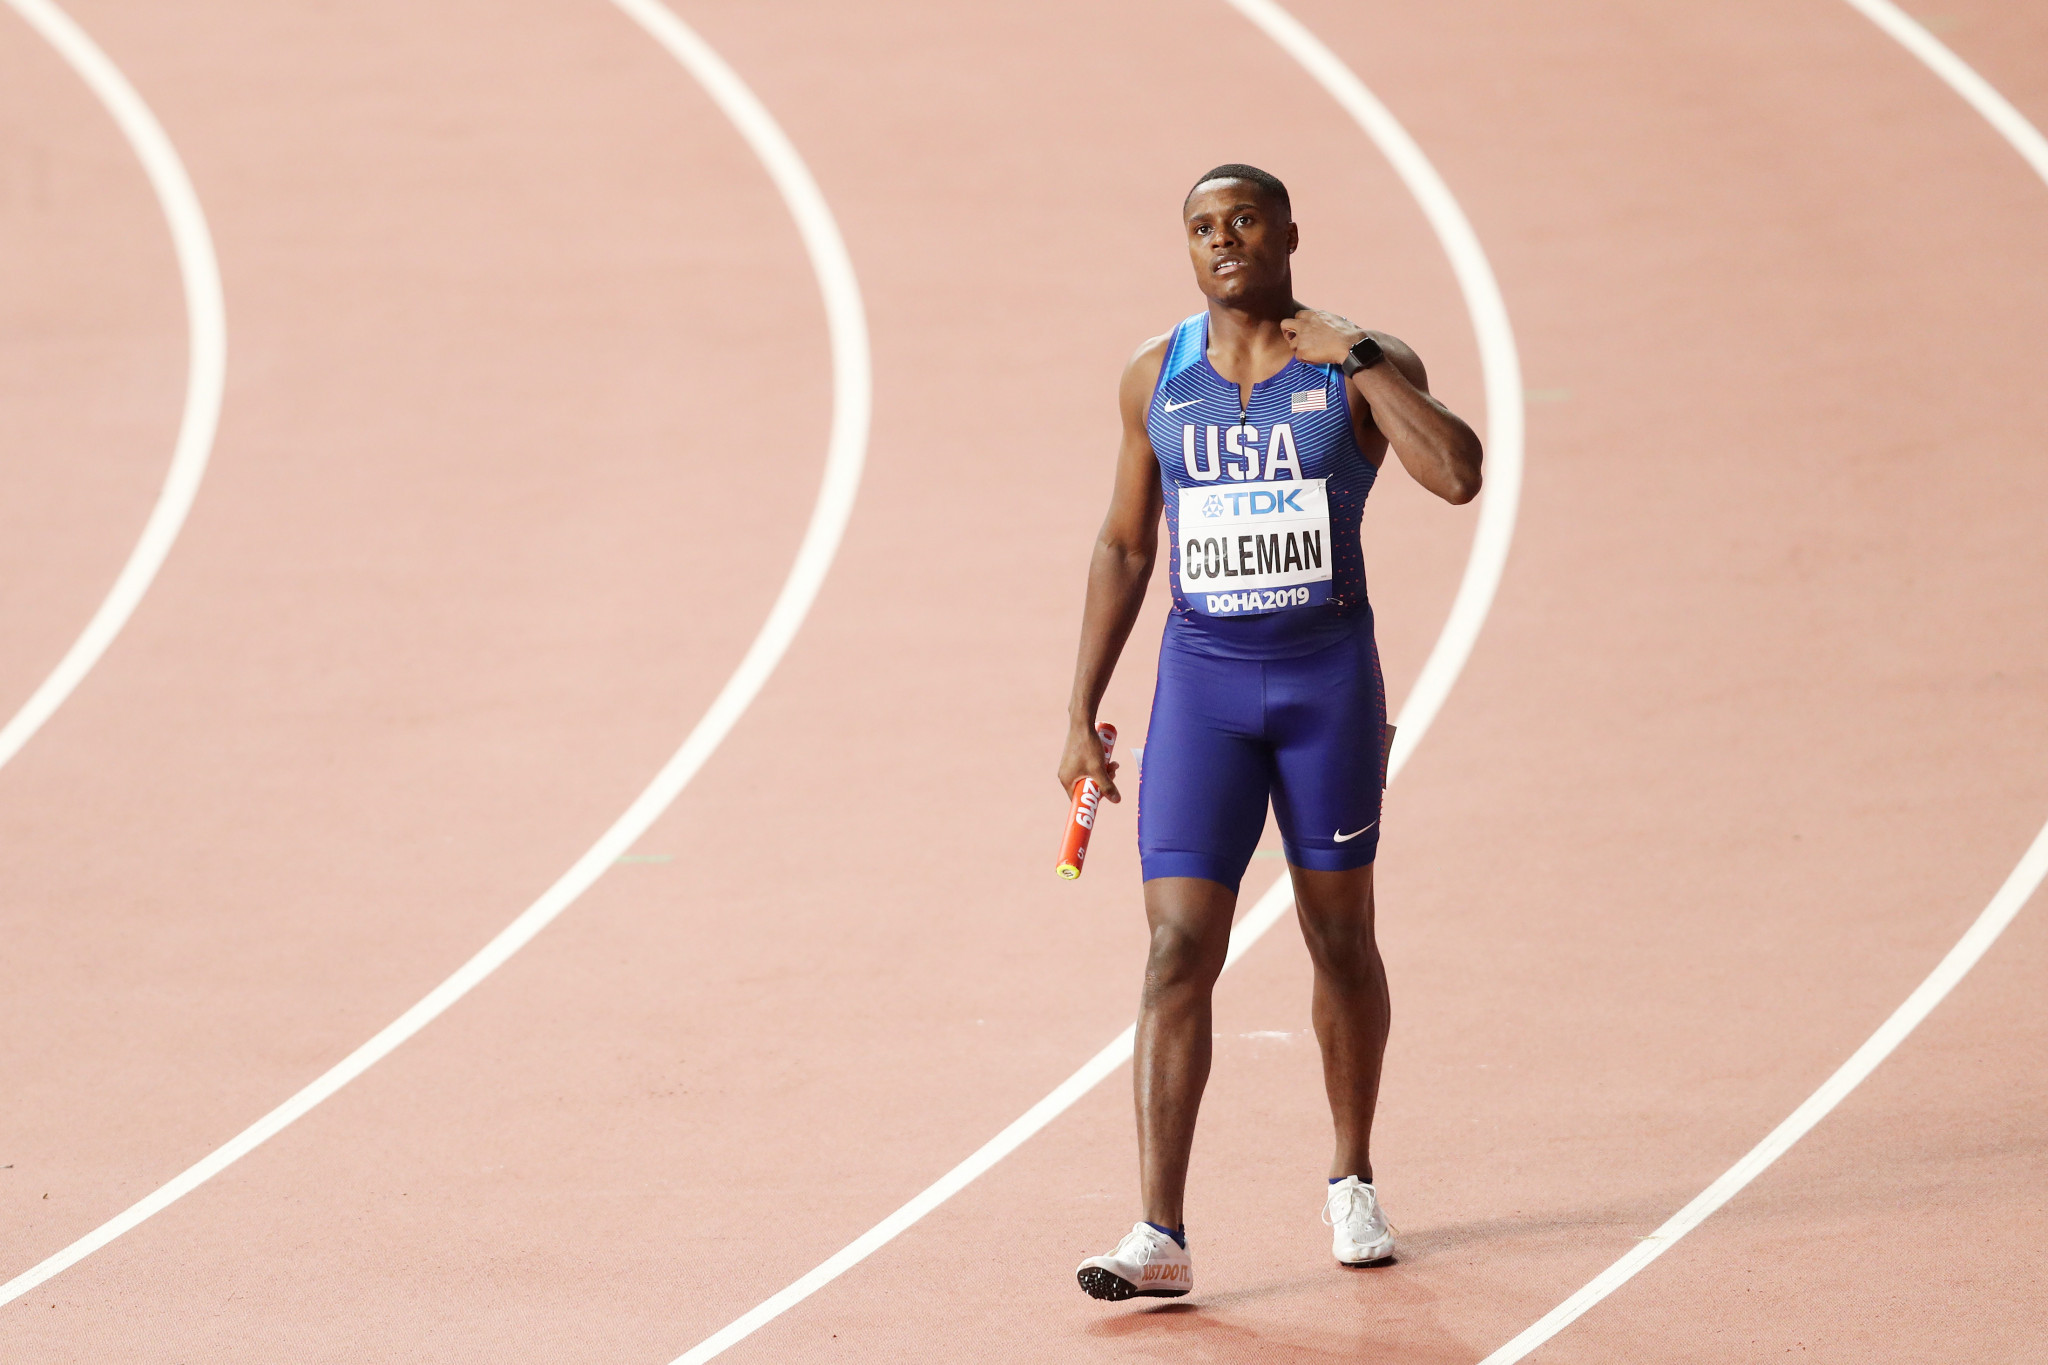 Men's world 100m champion Christian Coleman has appealed a two-year ban for anti-doping offences to the Court of Arbitration for Sport ©Getty Images